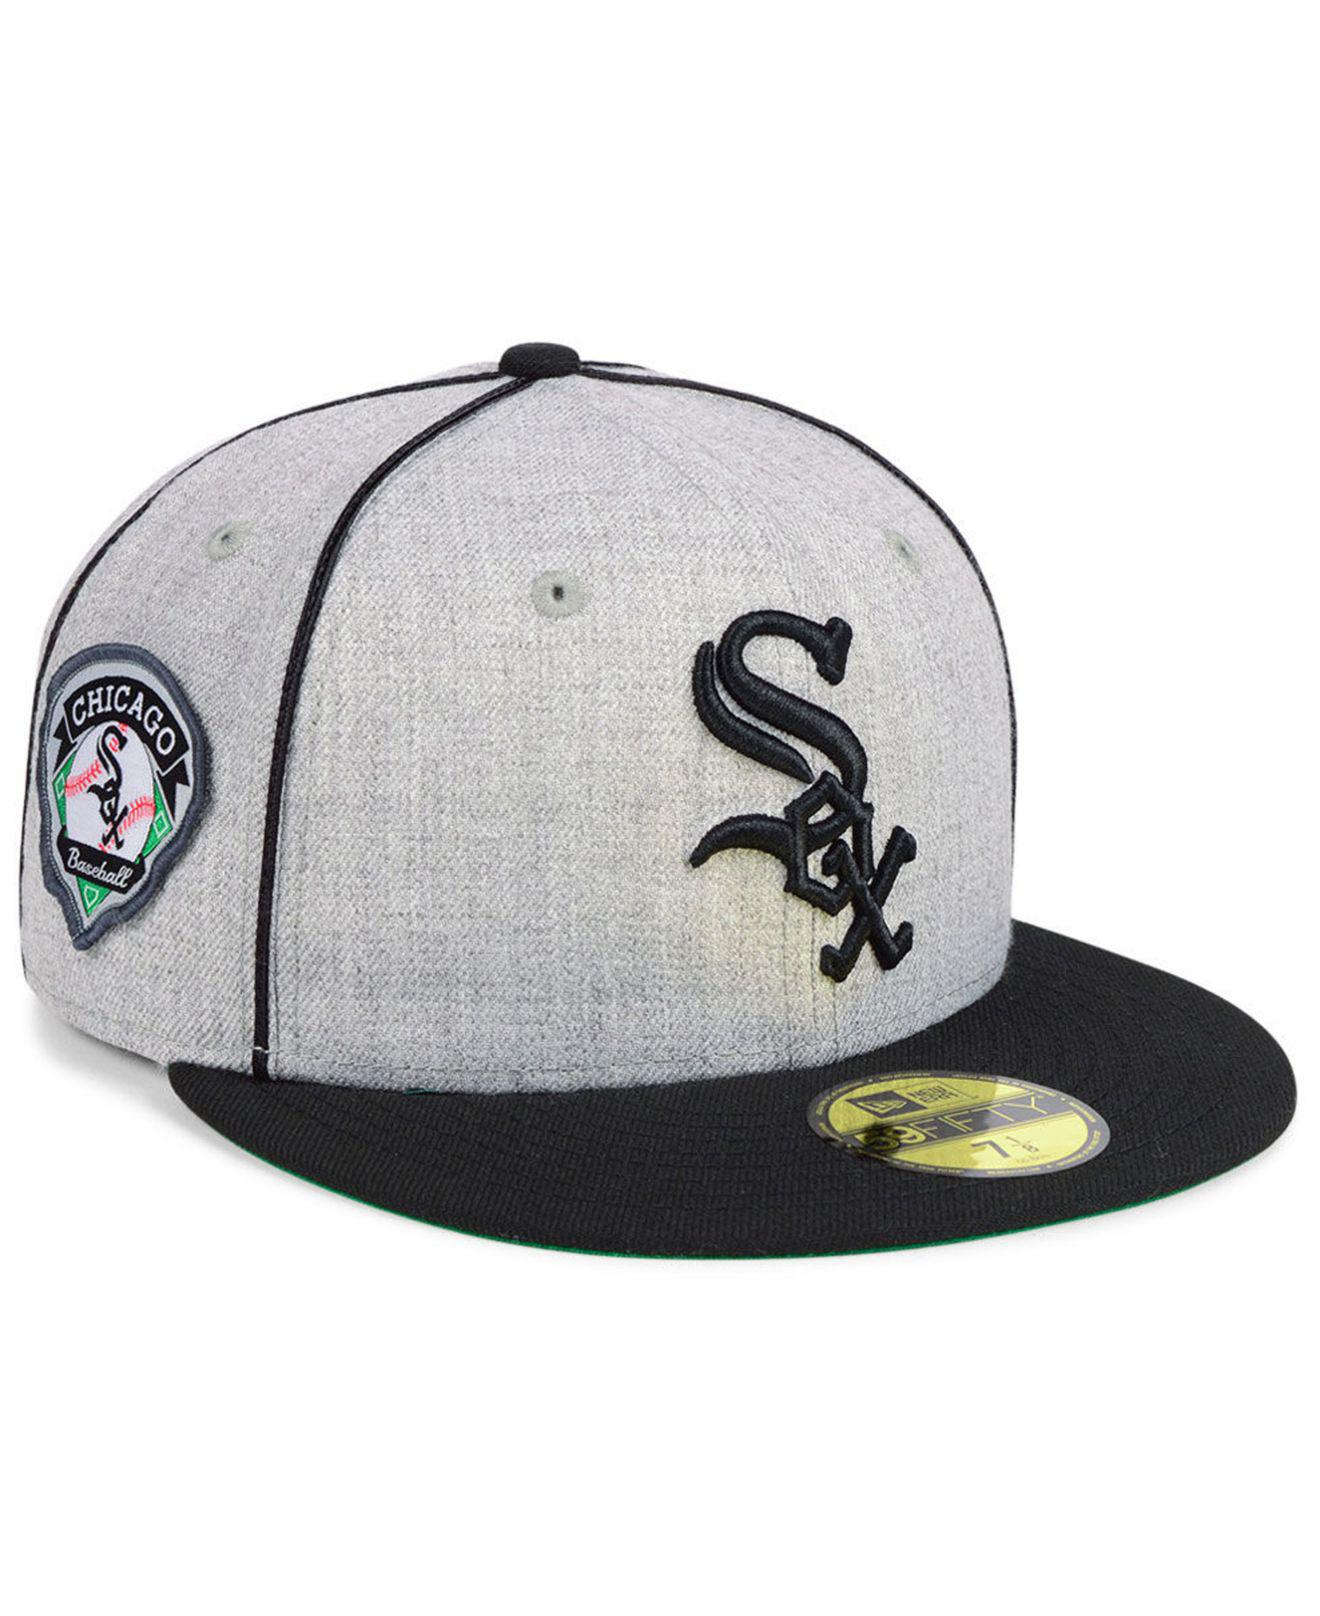 4d879b66291 Lyst - KTZ Chicago White Sox Stache 59fifty Fitted Cap for Men